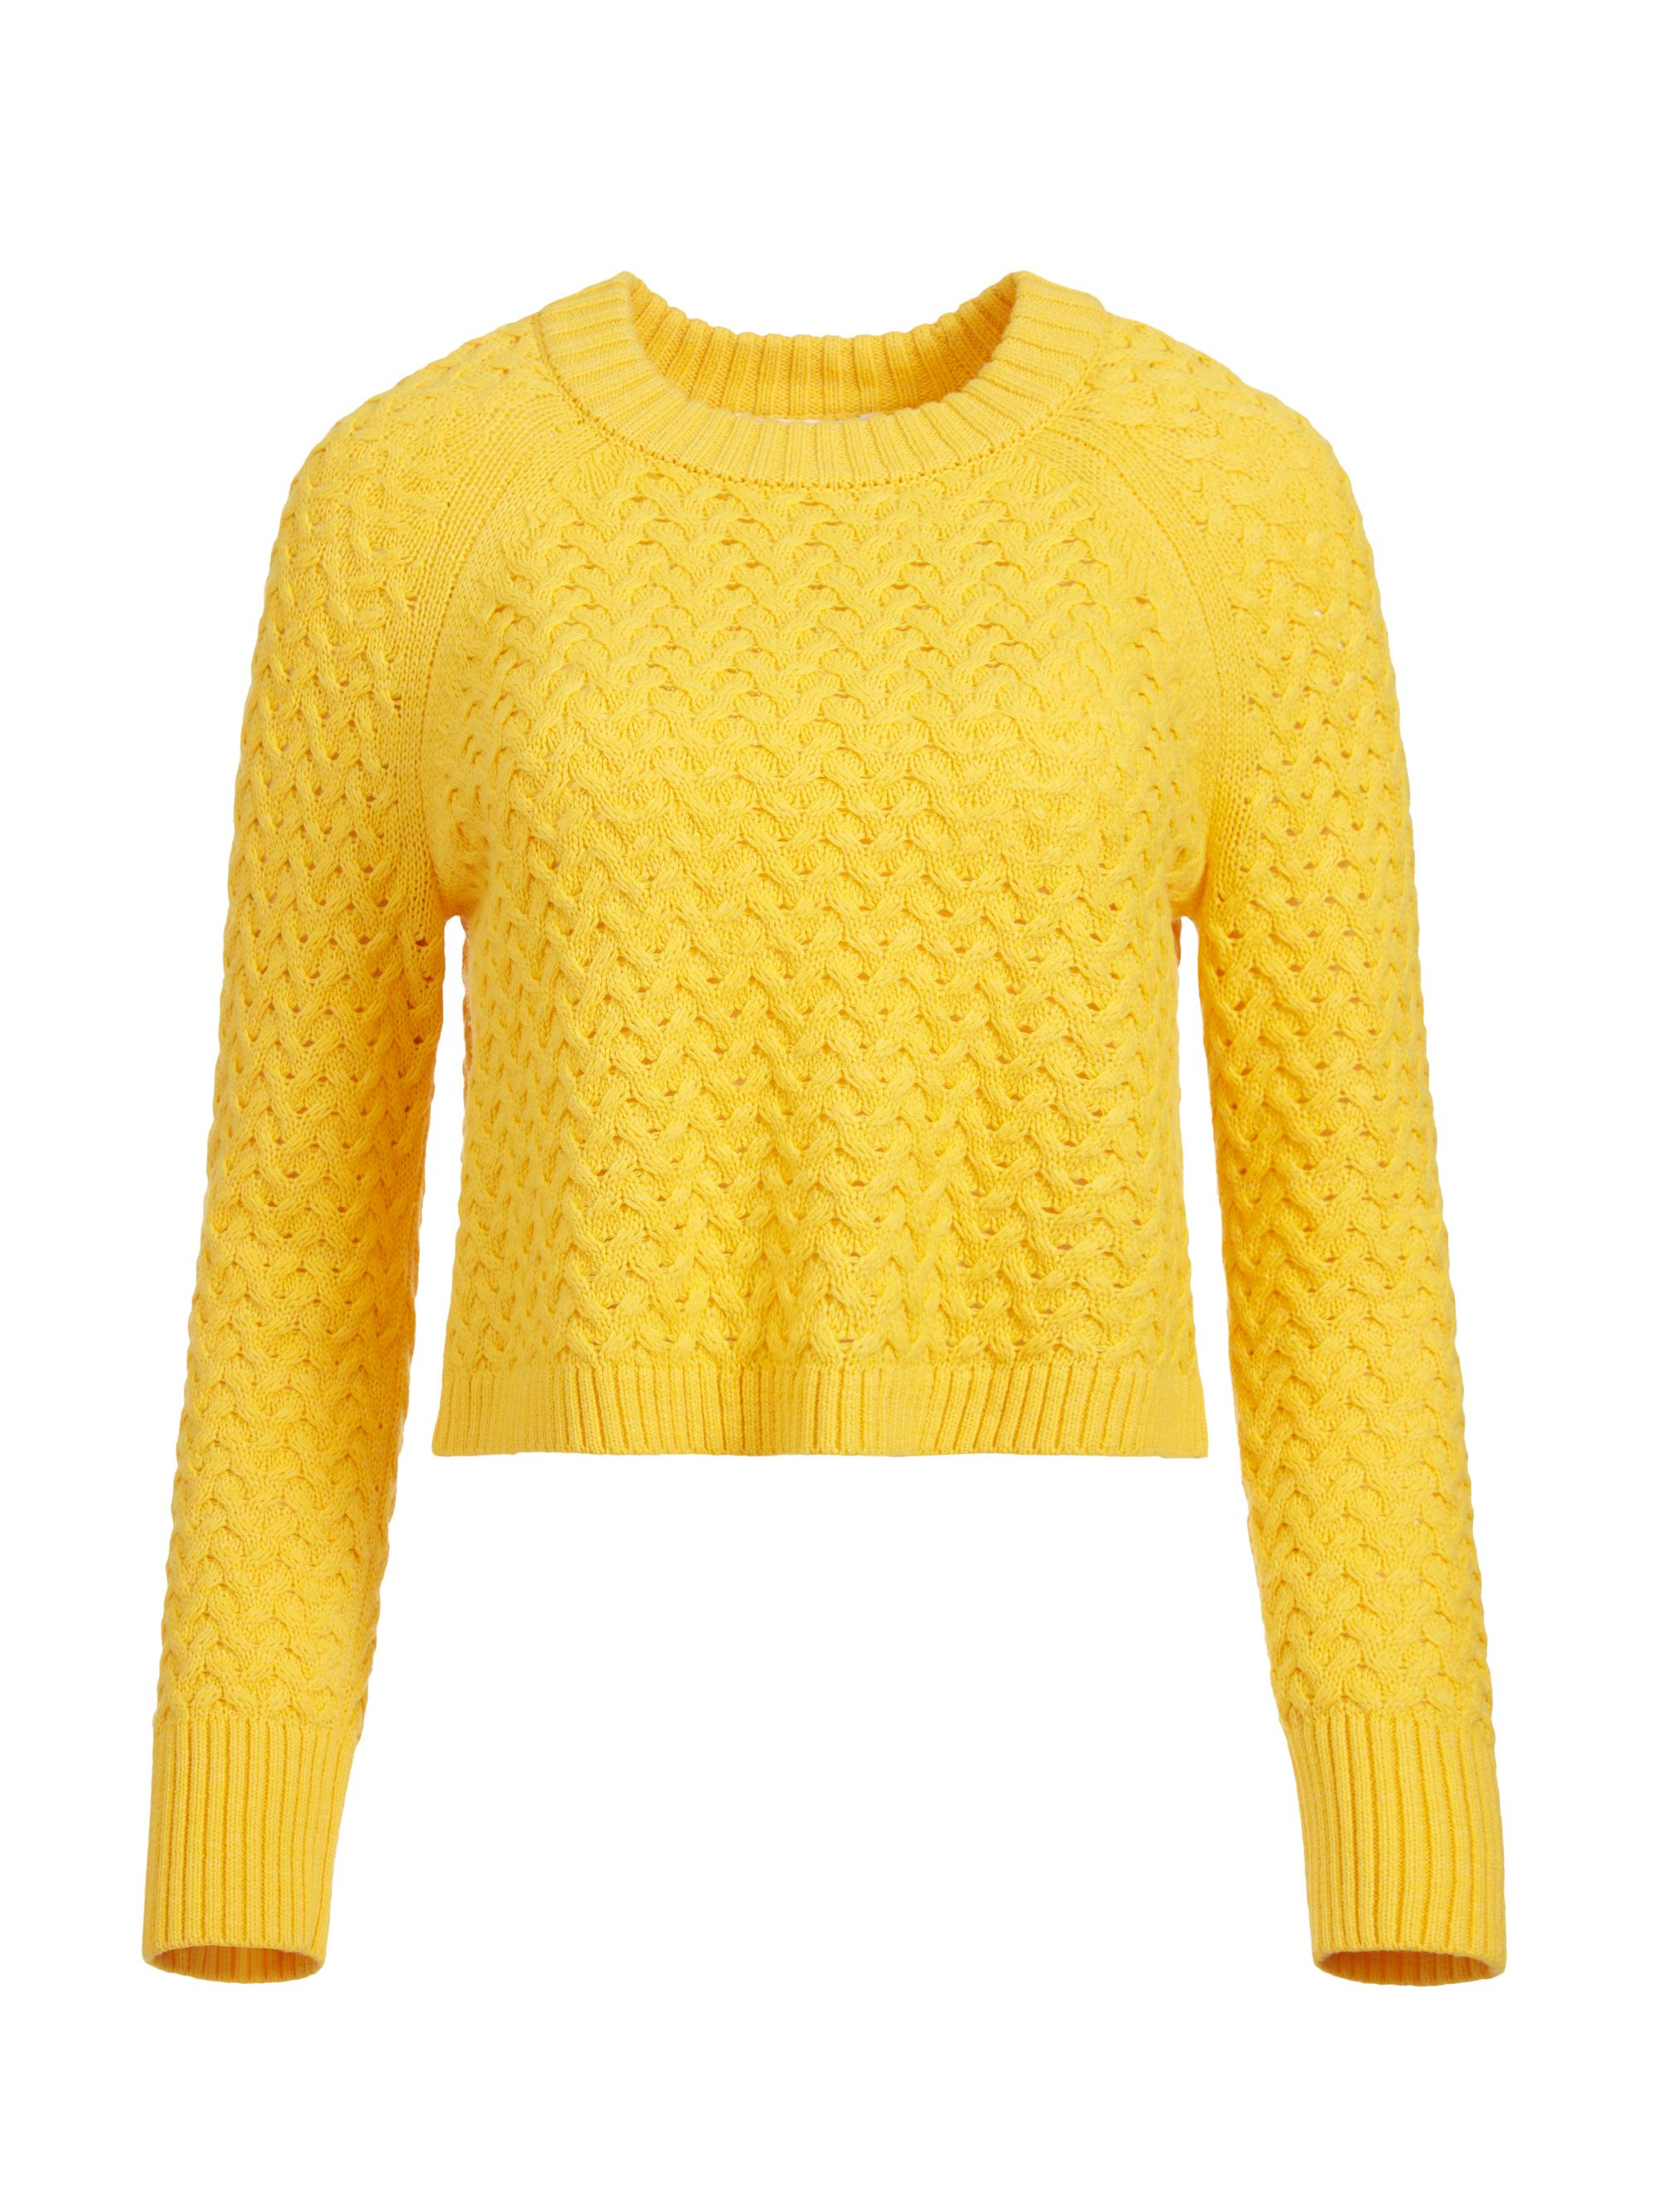 LETA CROPPED PULLOVER 7